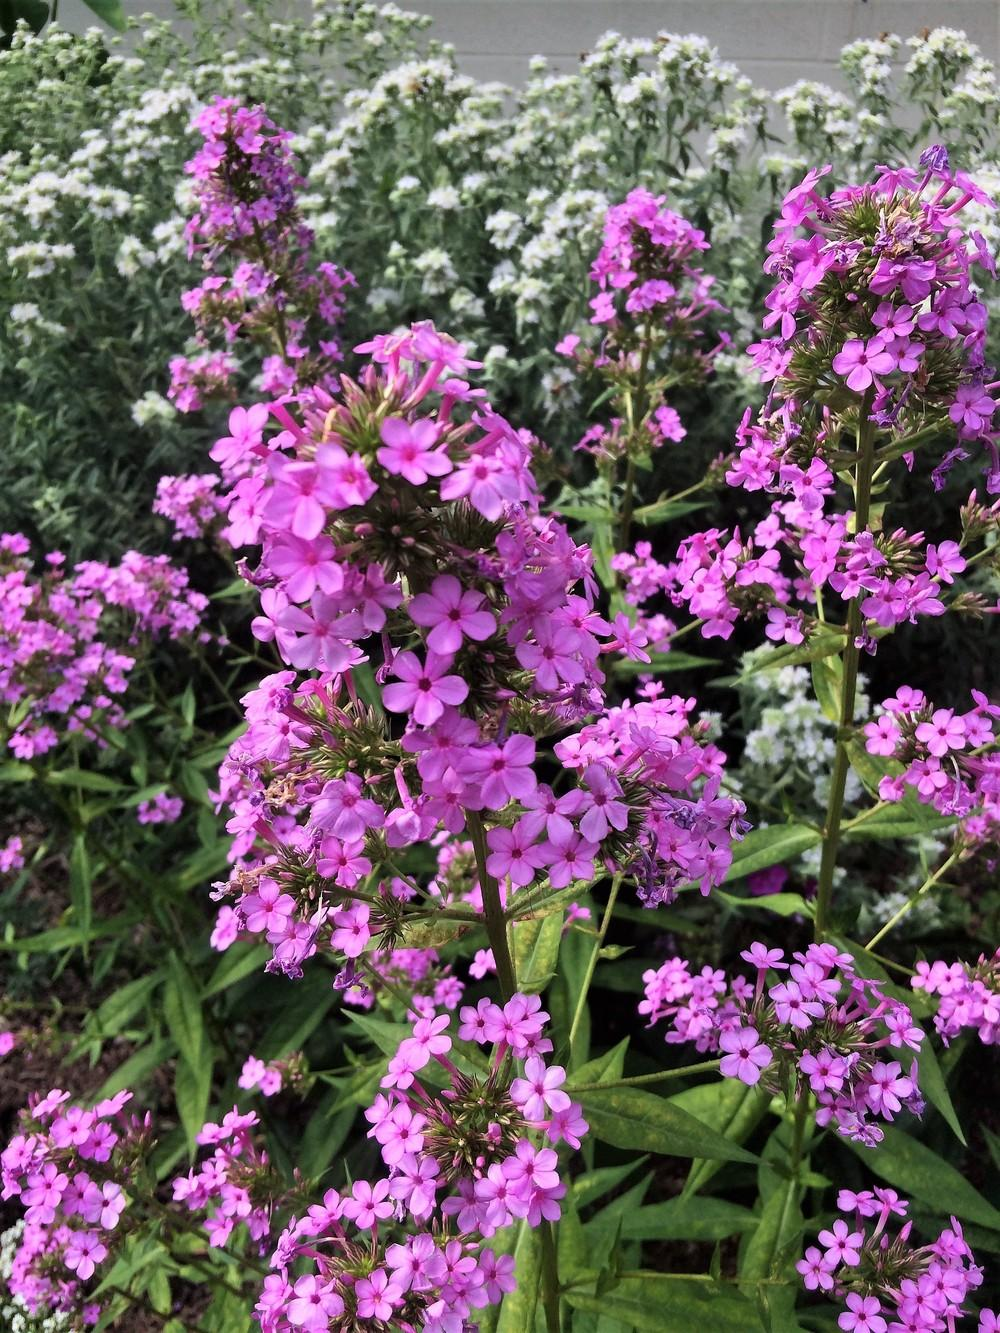 Photo of Garden Phlox (Phlox paniculata 'Jeana') uploaded by nativeplantlover